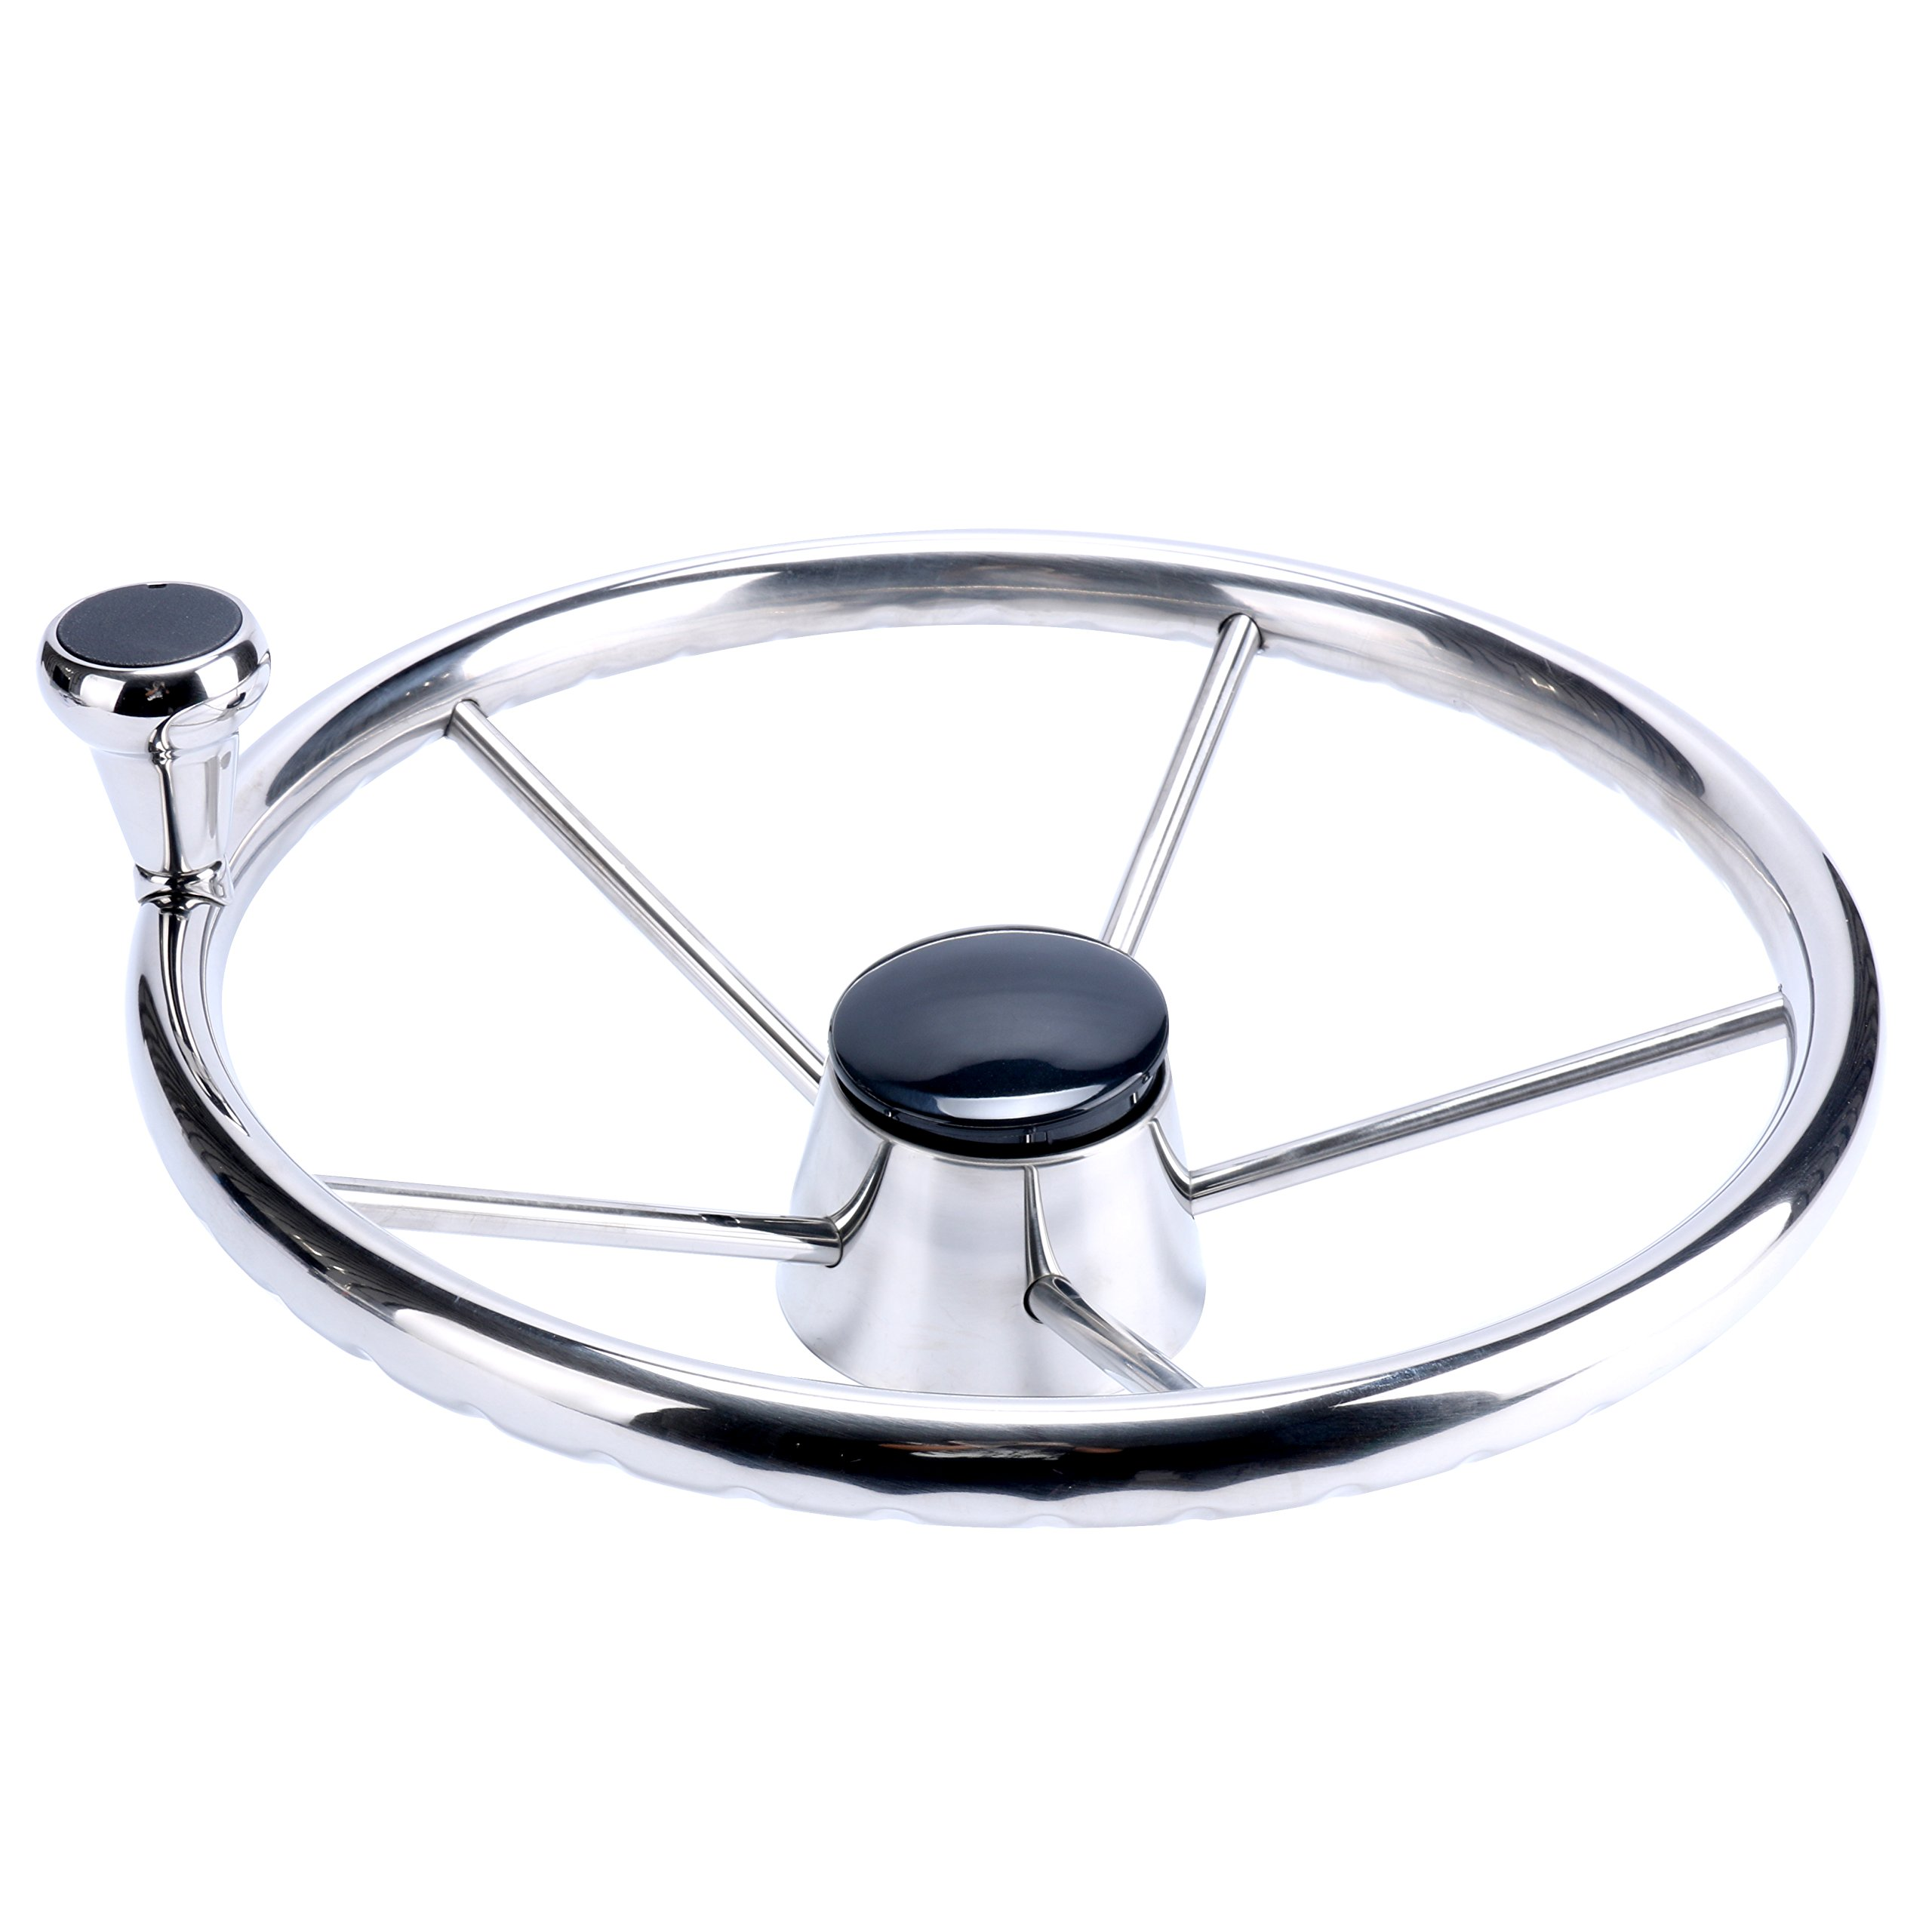 Amarine-made 5-Spoke 13-1/2 Inch Destroyer Style Stainless Boat Steering Wheel with Big Size Knob - XK-9310SRF1